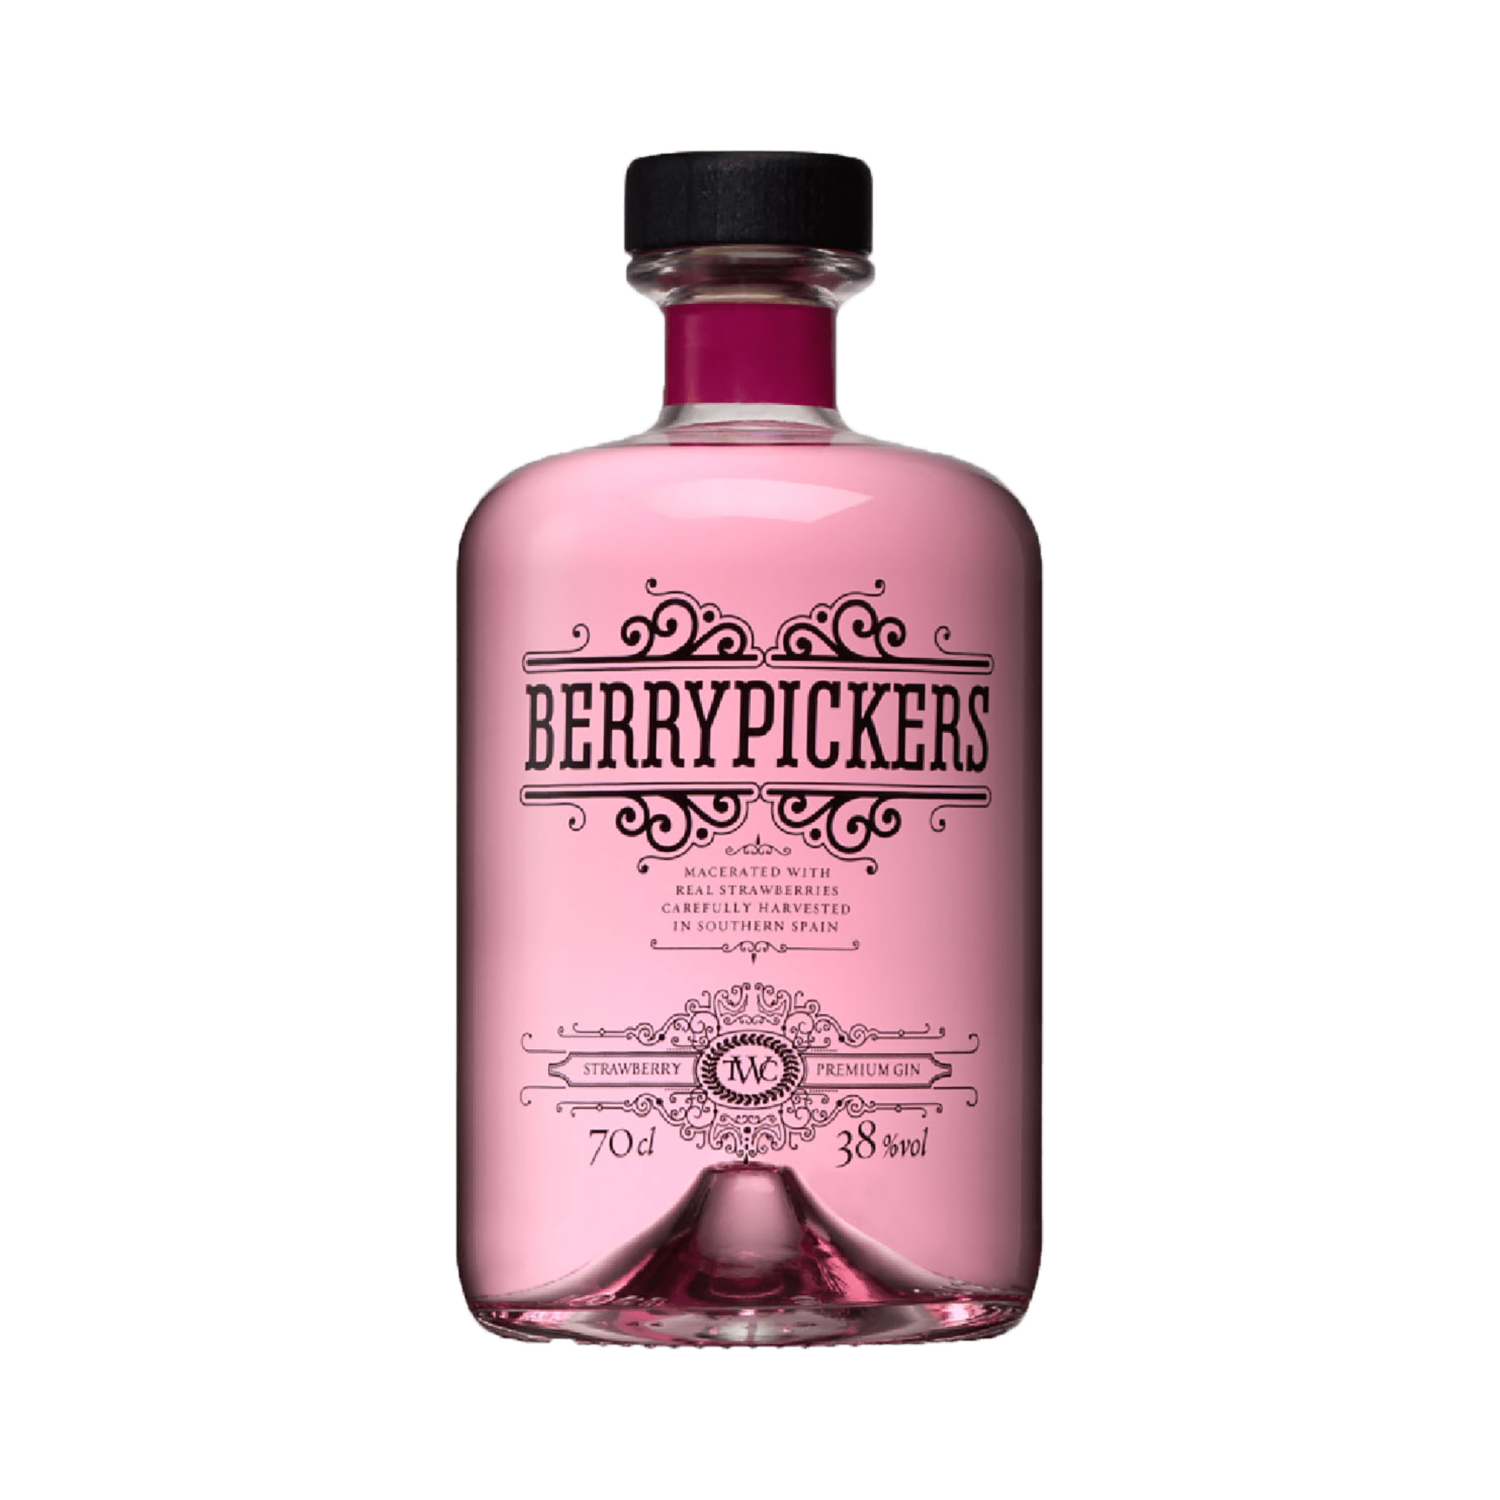 Berry Pickers Strawberry Gin 0.7l